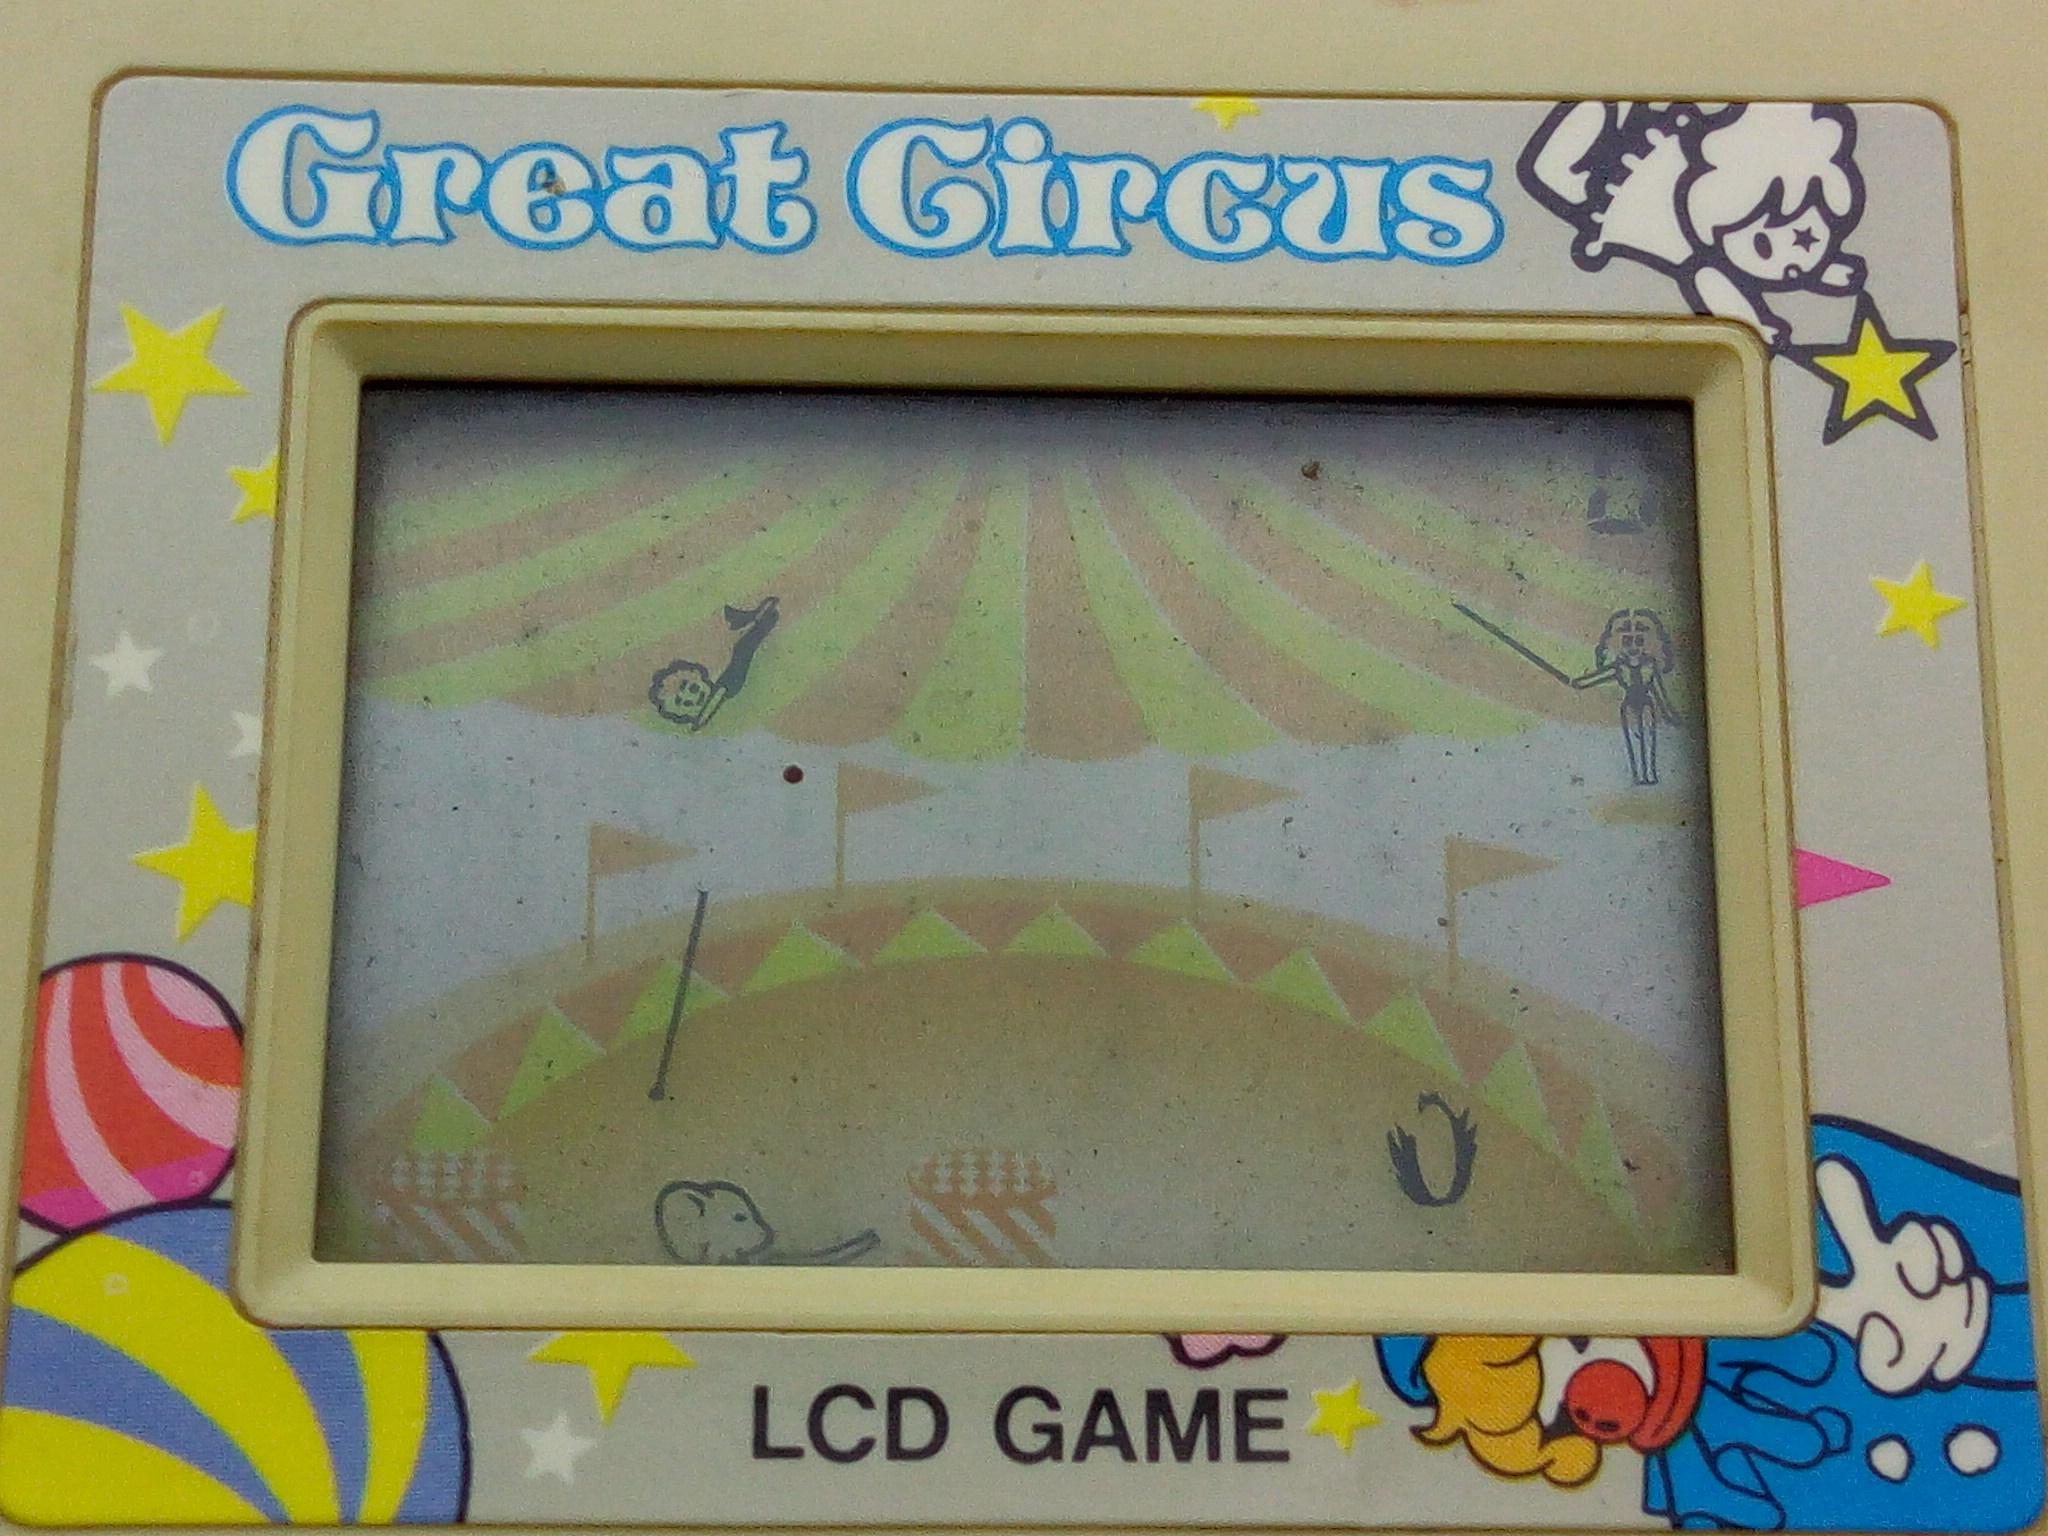 handheld empire game lansay great circus grand cirque